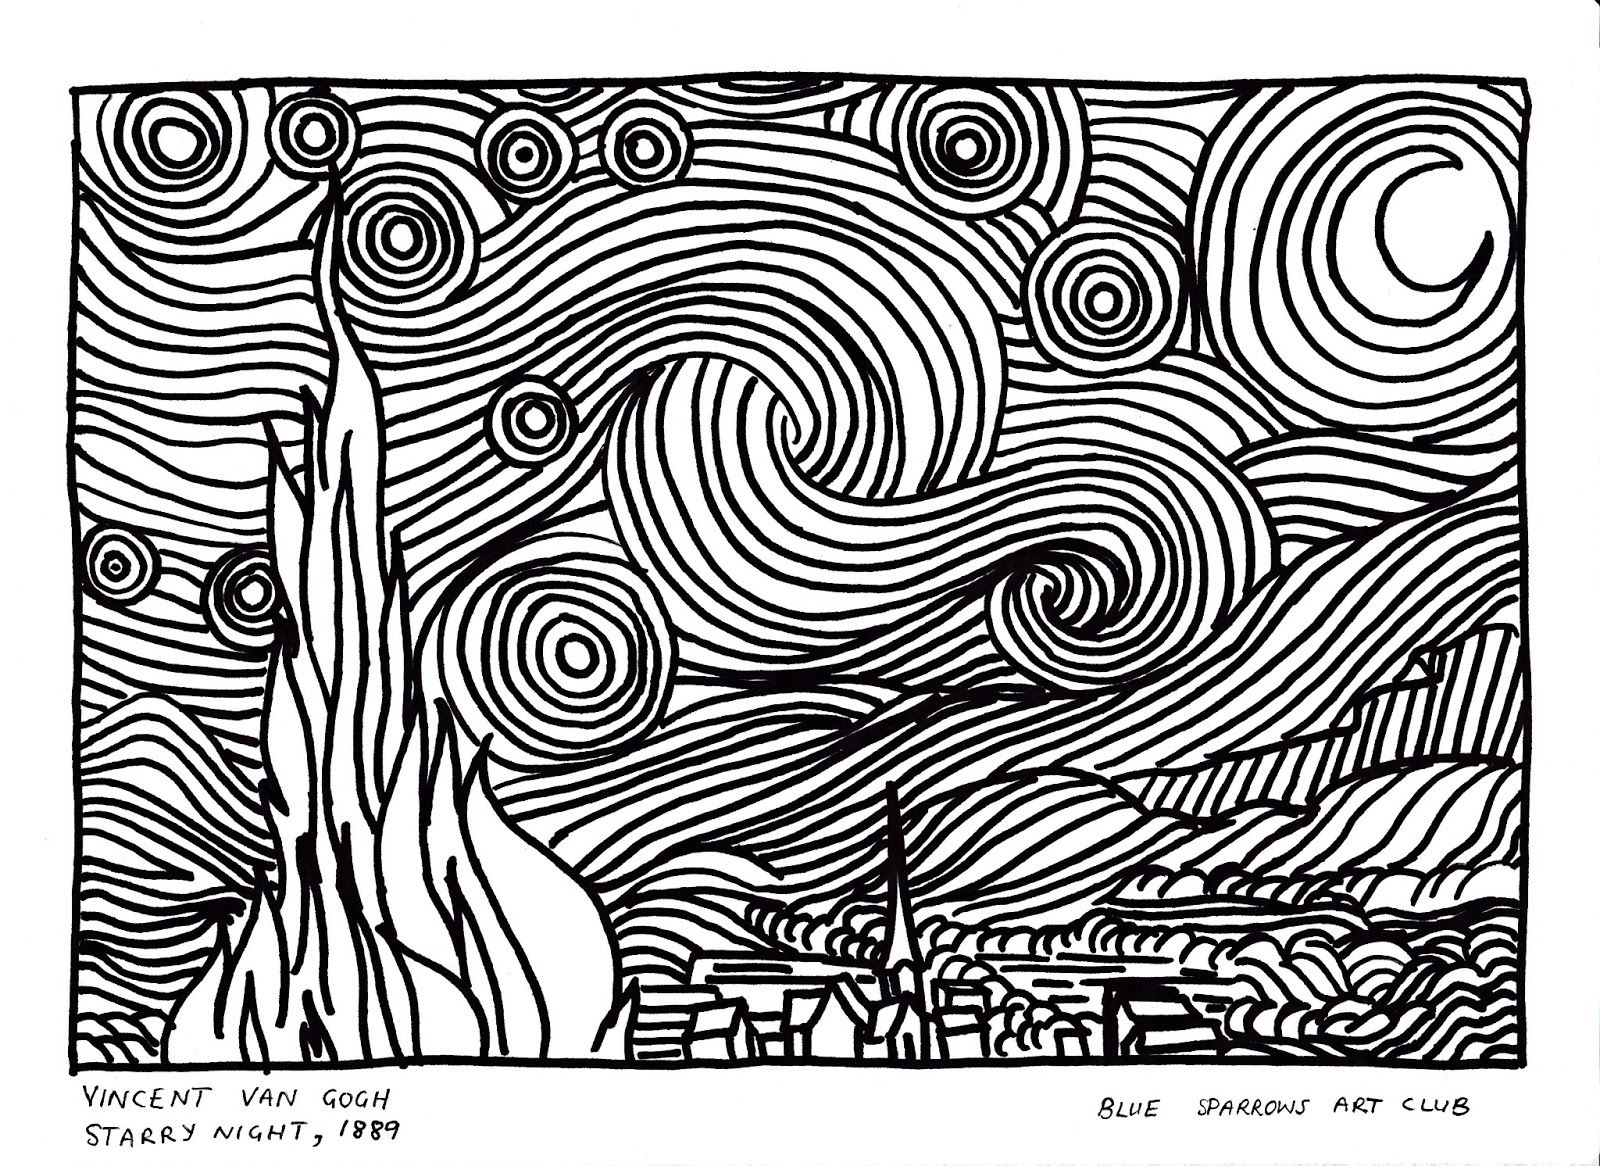 starry night coloring pages Van Gogh Starry Night Coloring Page, Vincent Van Gogh Starry Night  starry night coloring pages